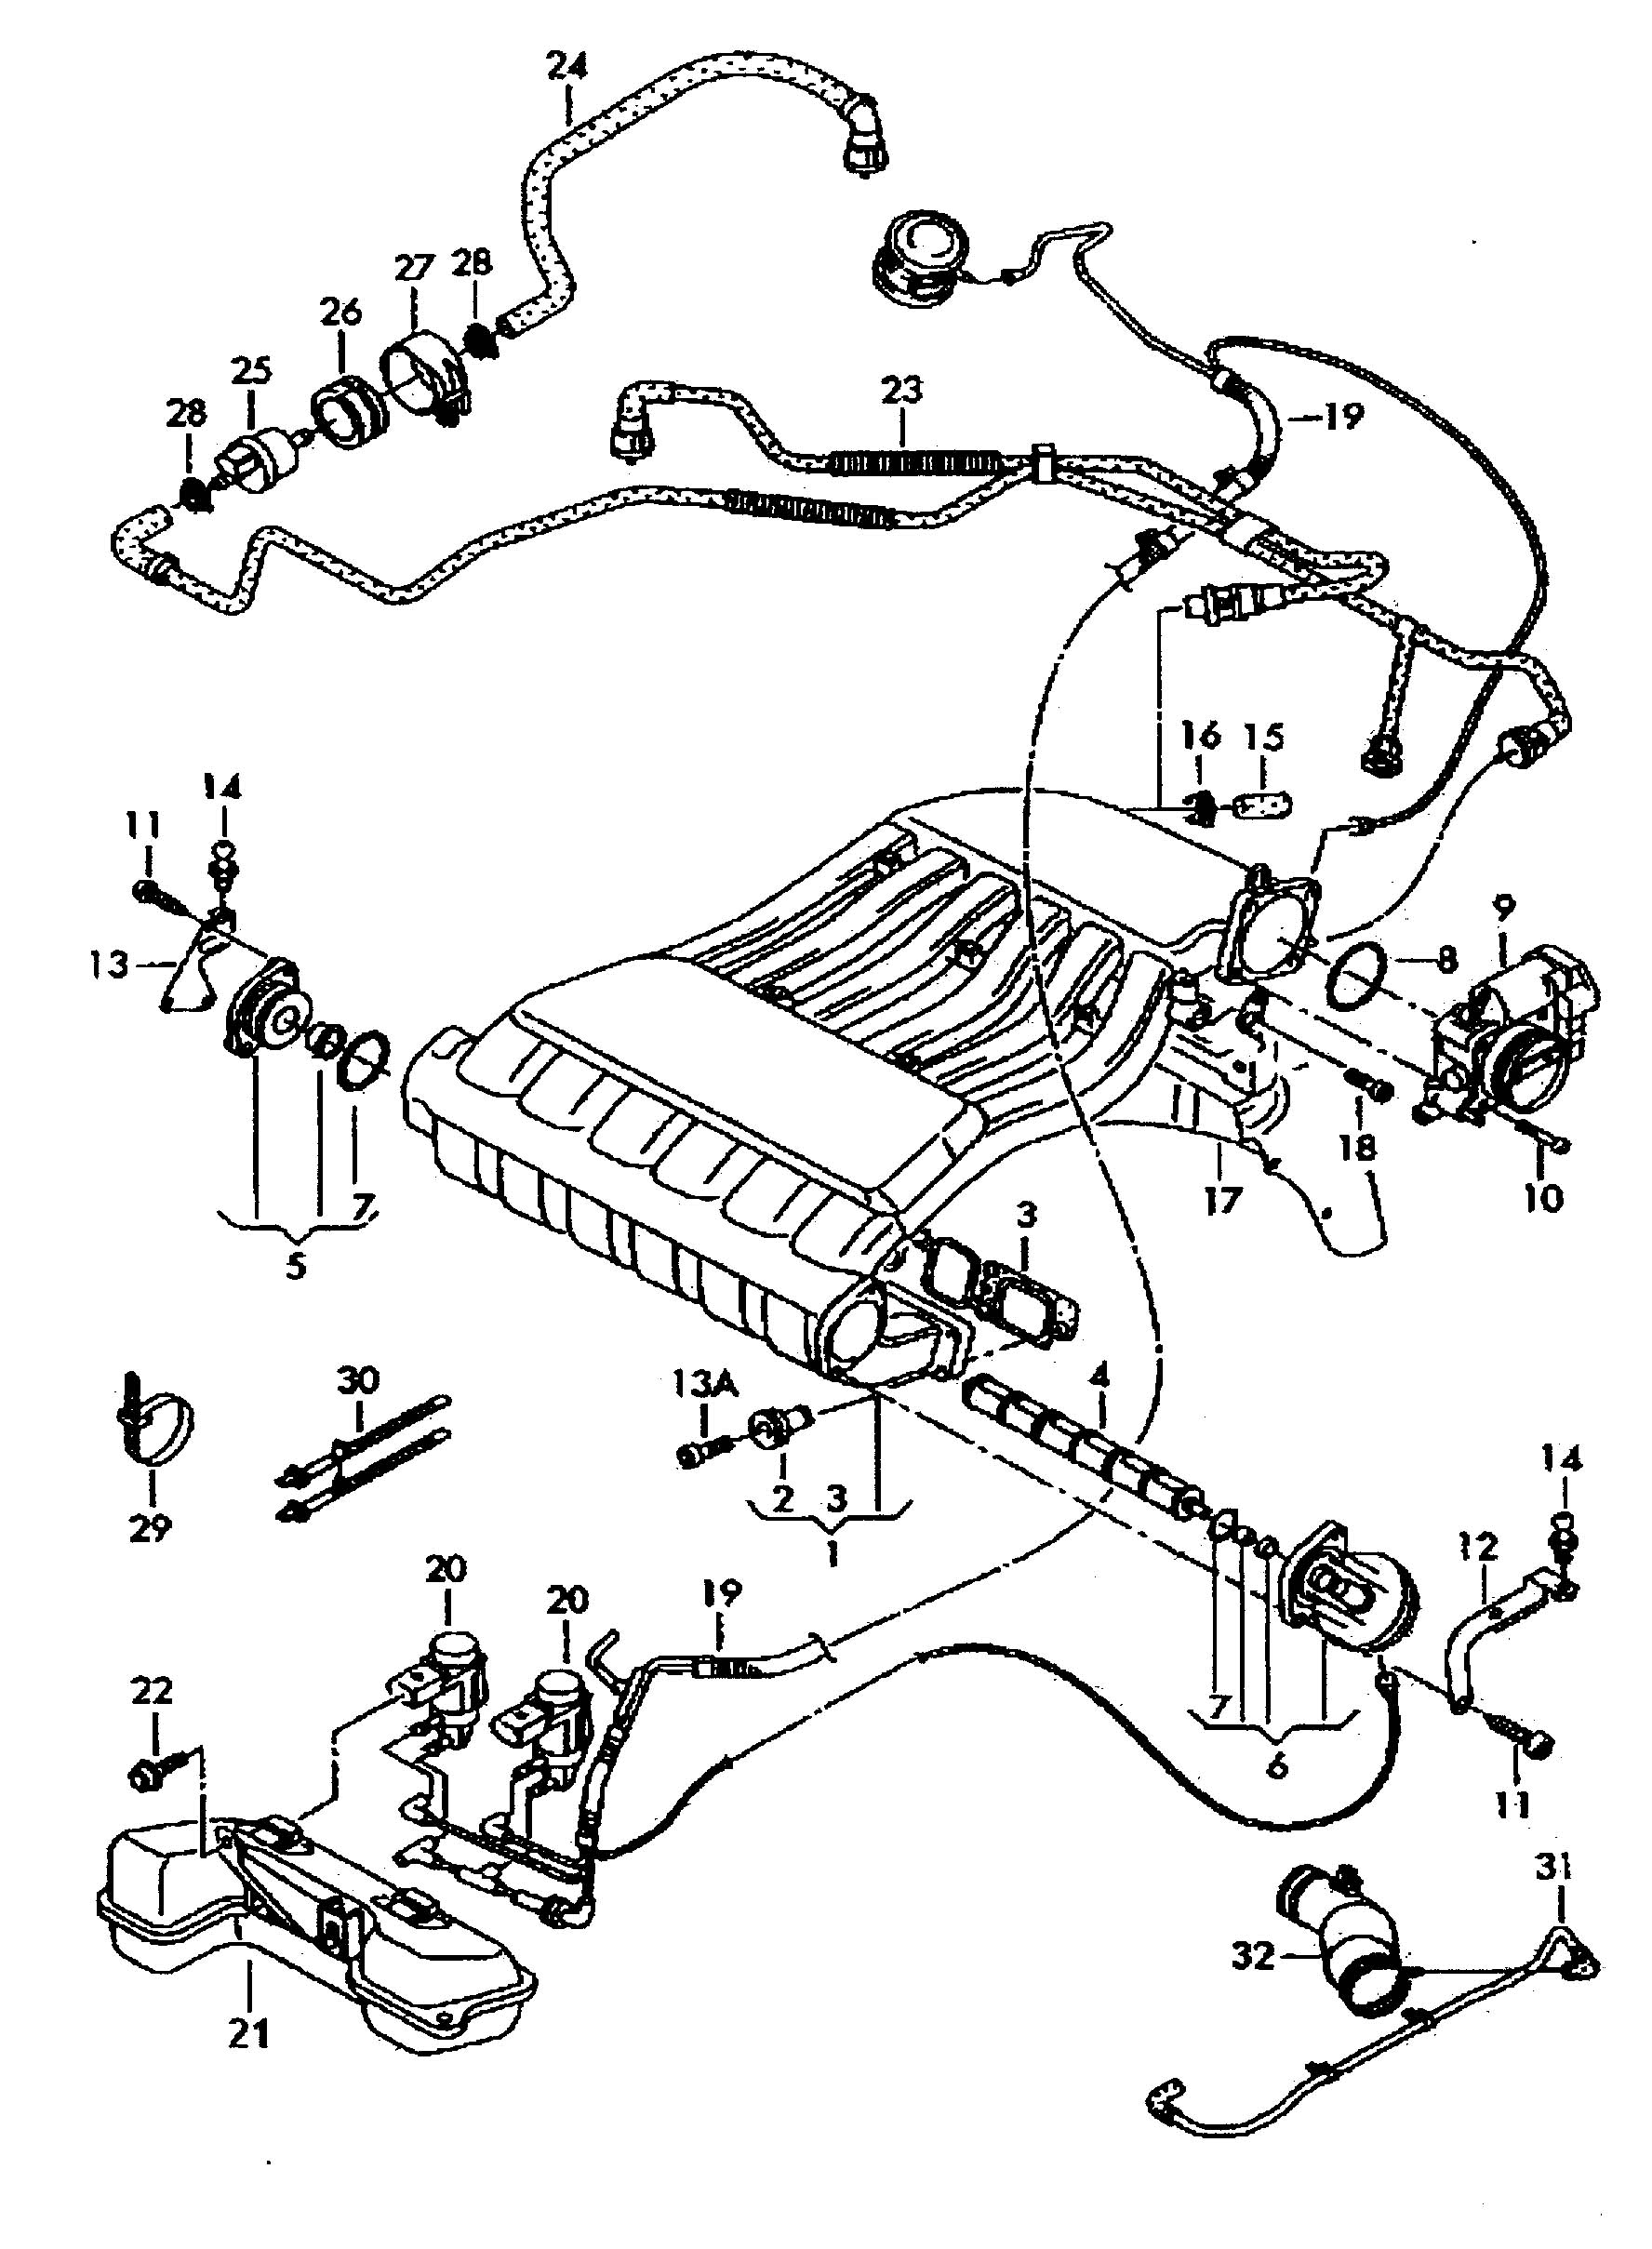 24v Vr6 Jetta Engine Diagram Great Installation Of Wiring 99 2 0 Intake Trusted Online Rh 40 Perueckenstudio24 De Vw